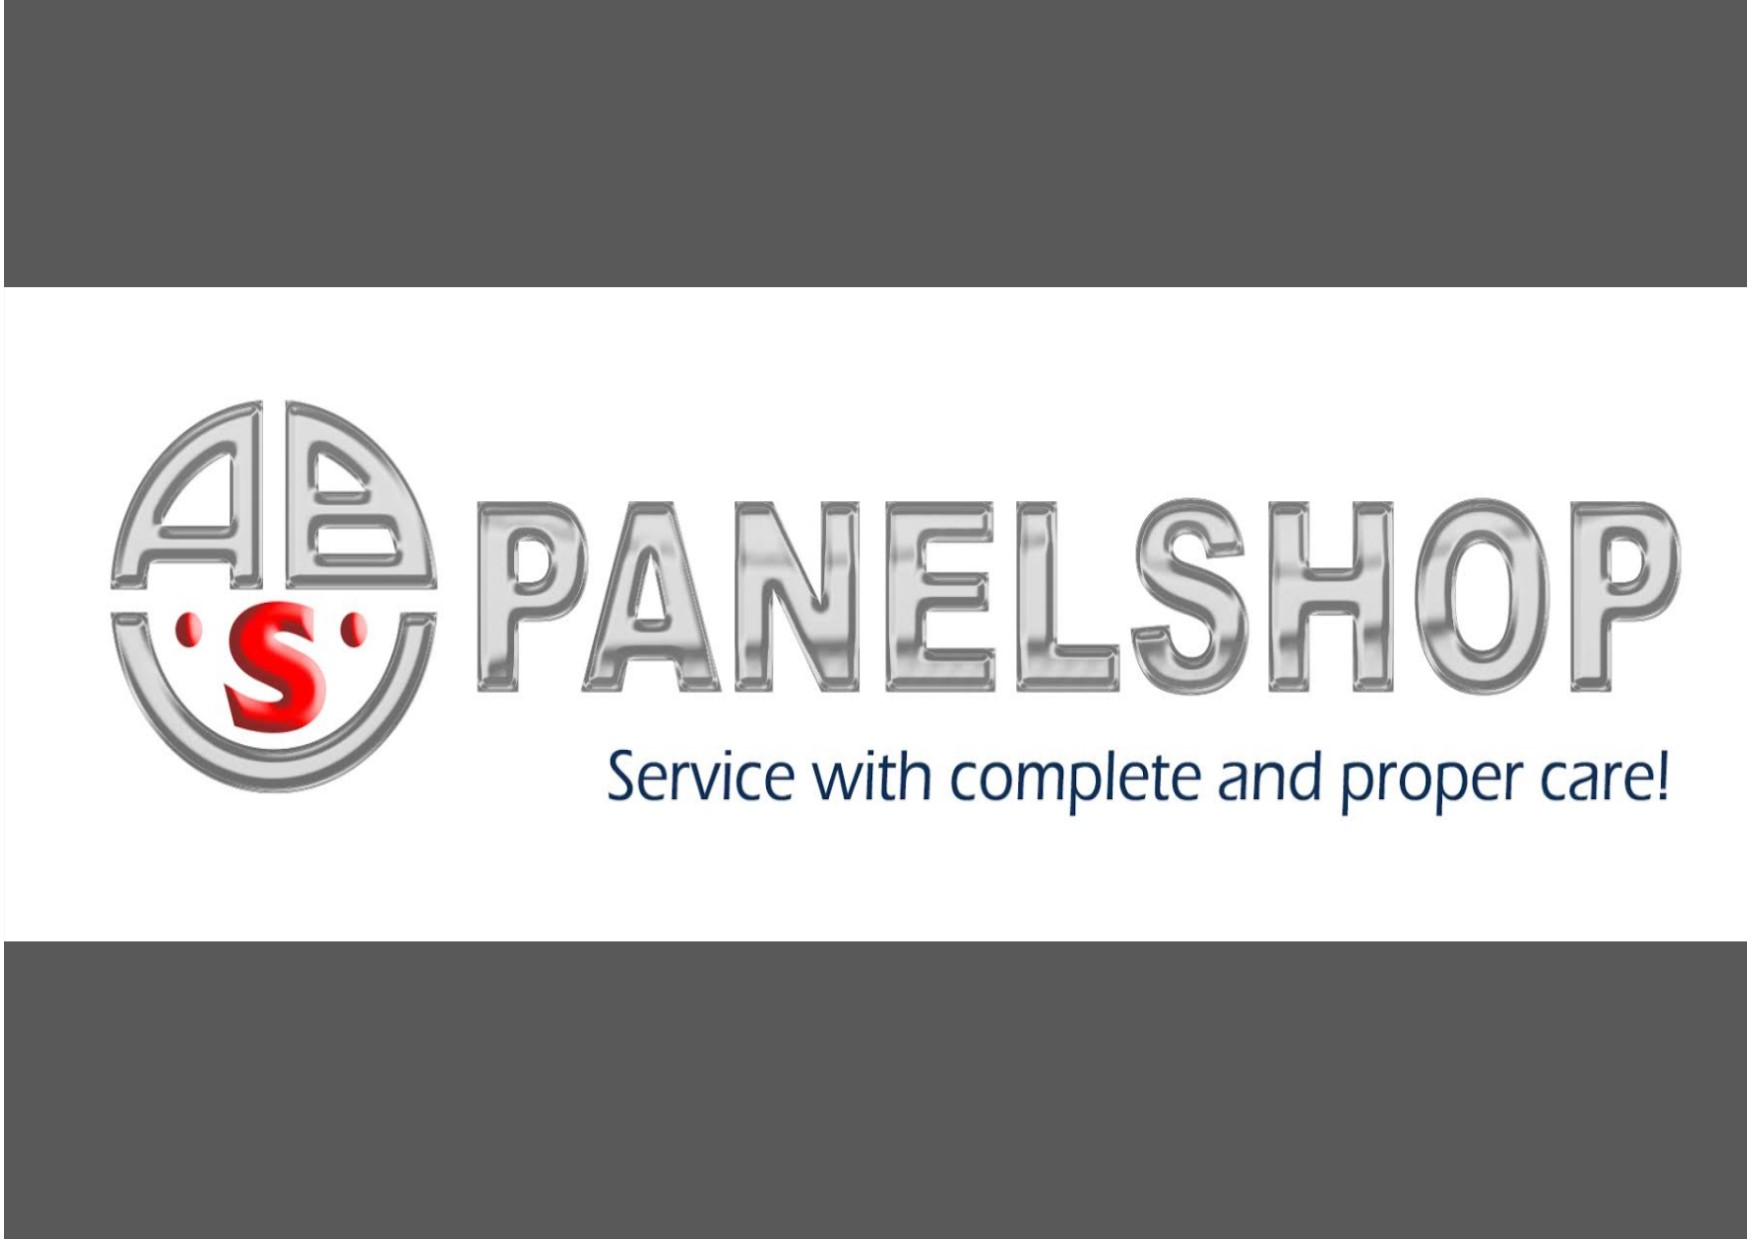 Logo of ABS Panel Shop